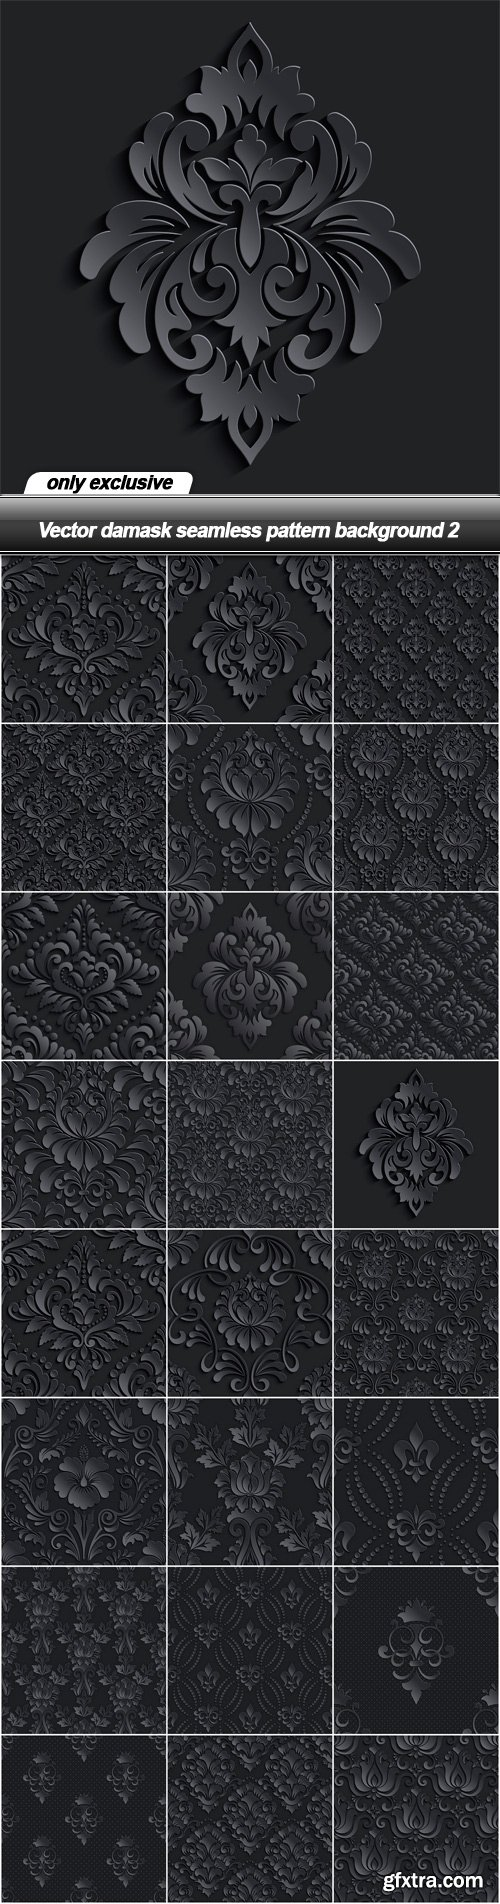 Vector damask seamless pattern background 2 - 25 EPS